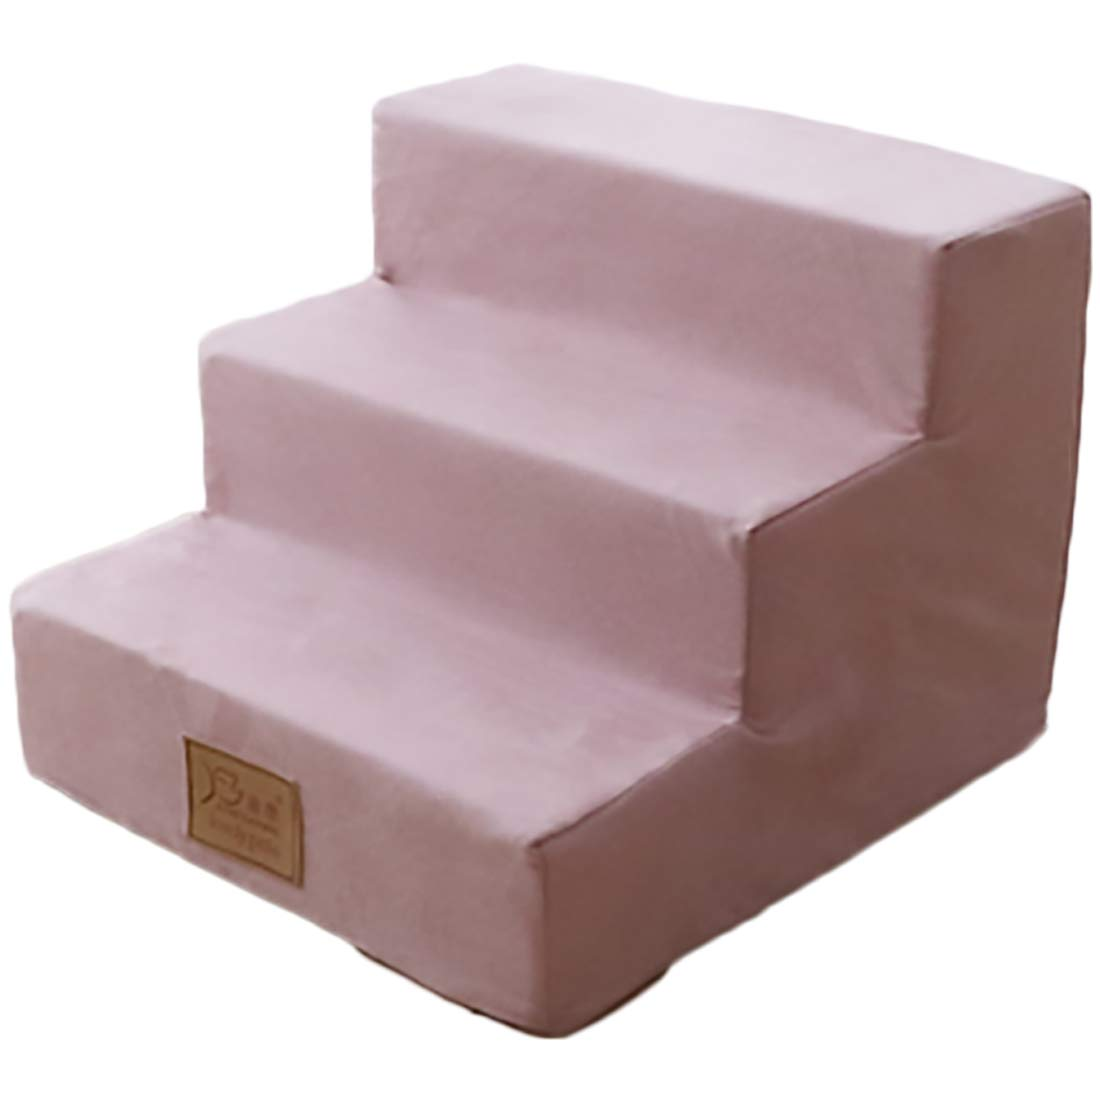 Dog Steps for High Bed Pet Stairs Dog Stairs Going Up to The Climb Ladder Dog Mat Sponge Mats Suede Family Favorite Pink